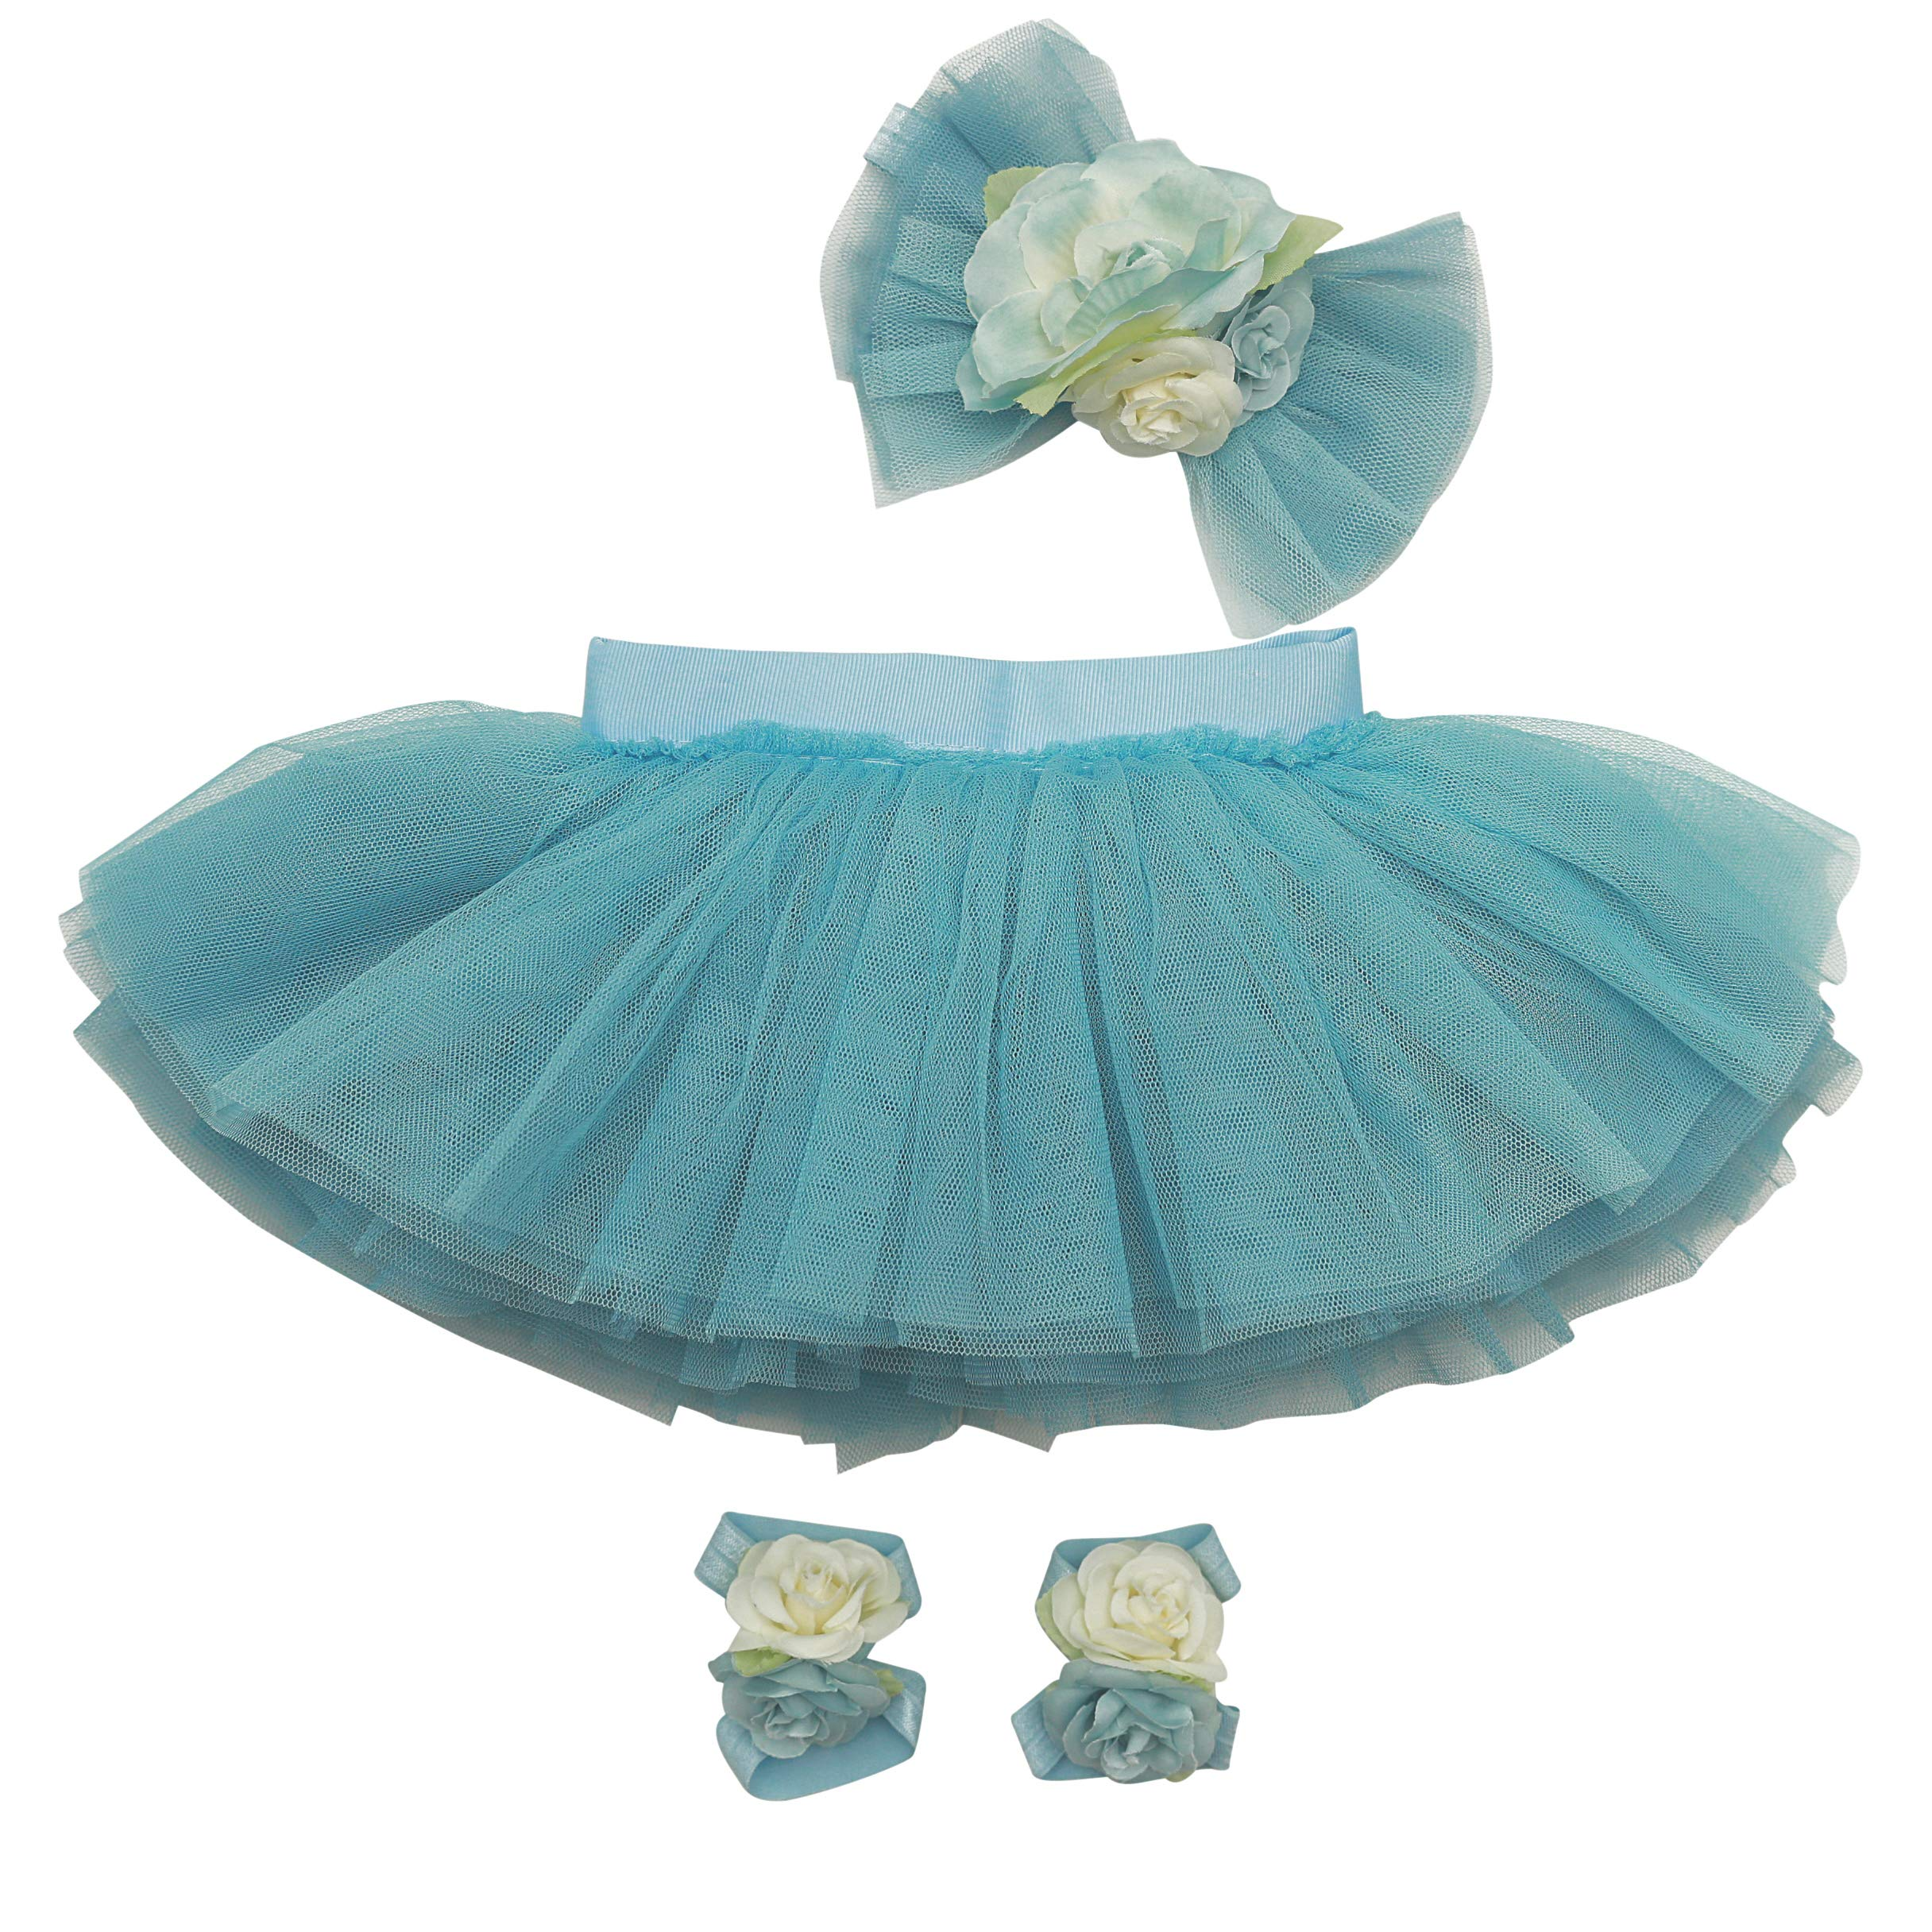 Newborn Girl Tutu Set Skirt with Headband Infant Outfit Dress Clothes Photography Prop - Easter Outfits for Baby Girls Blue